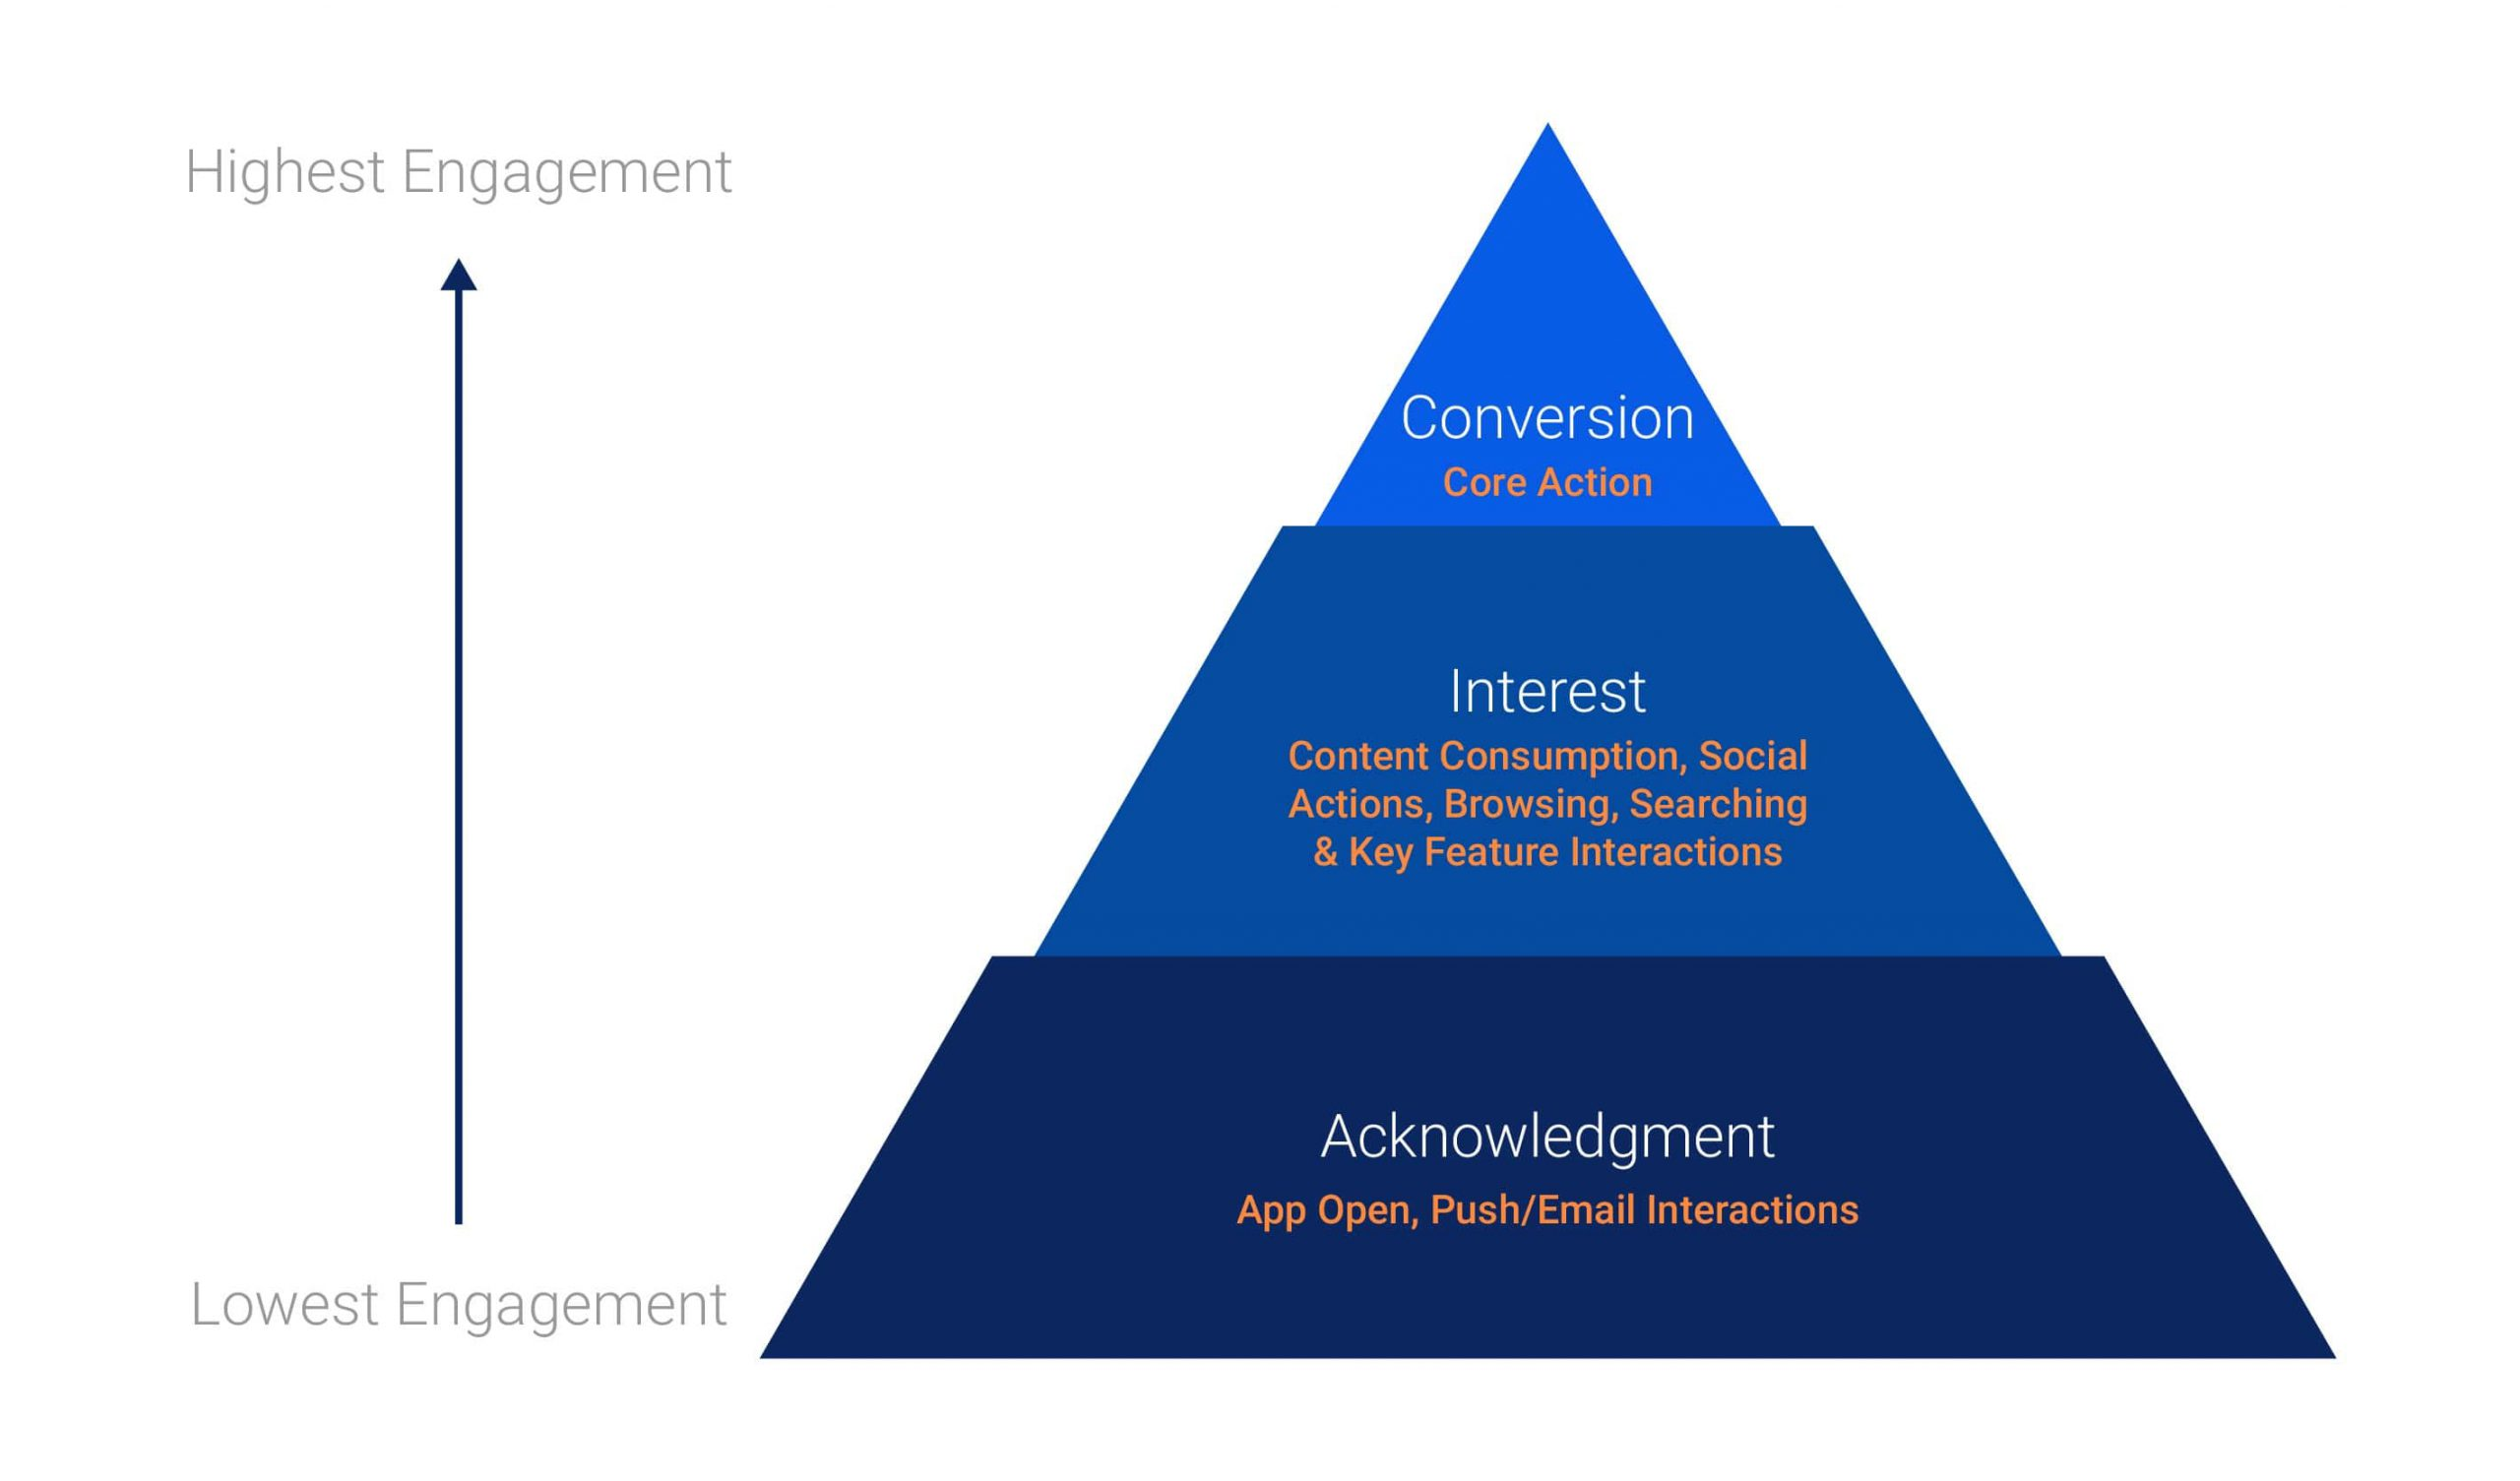 AIC Framework - a more nuanced view of engagement